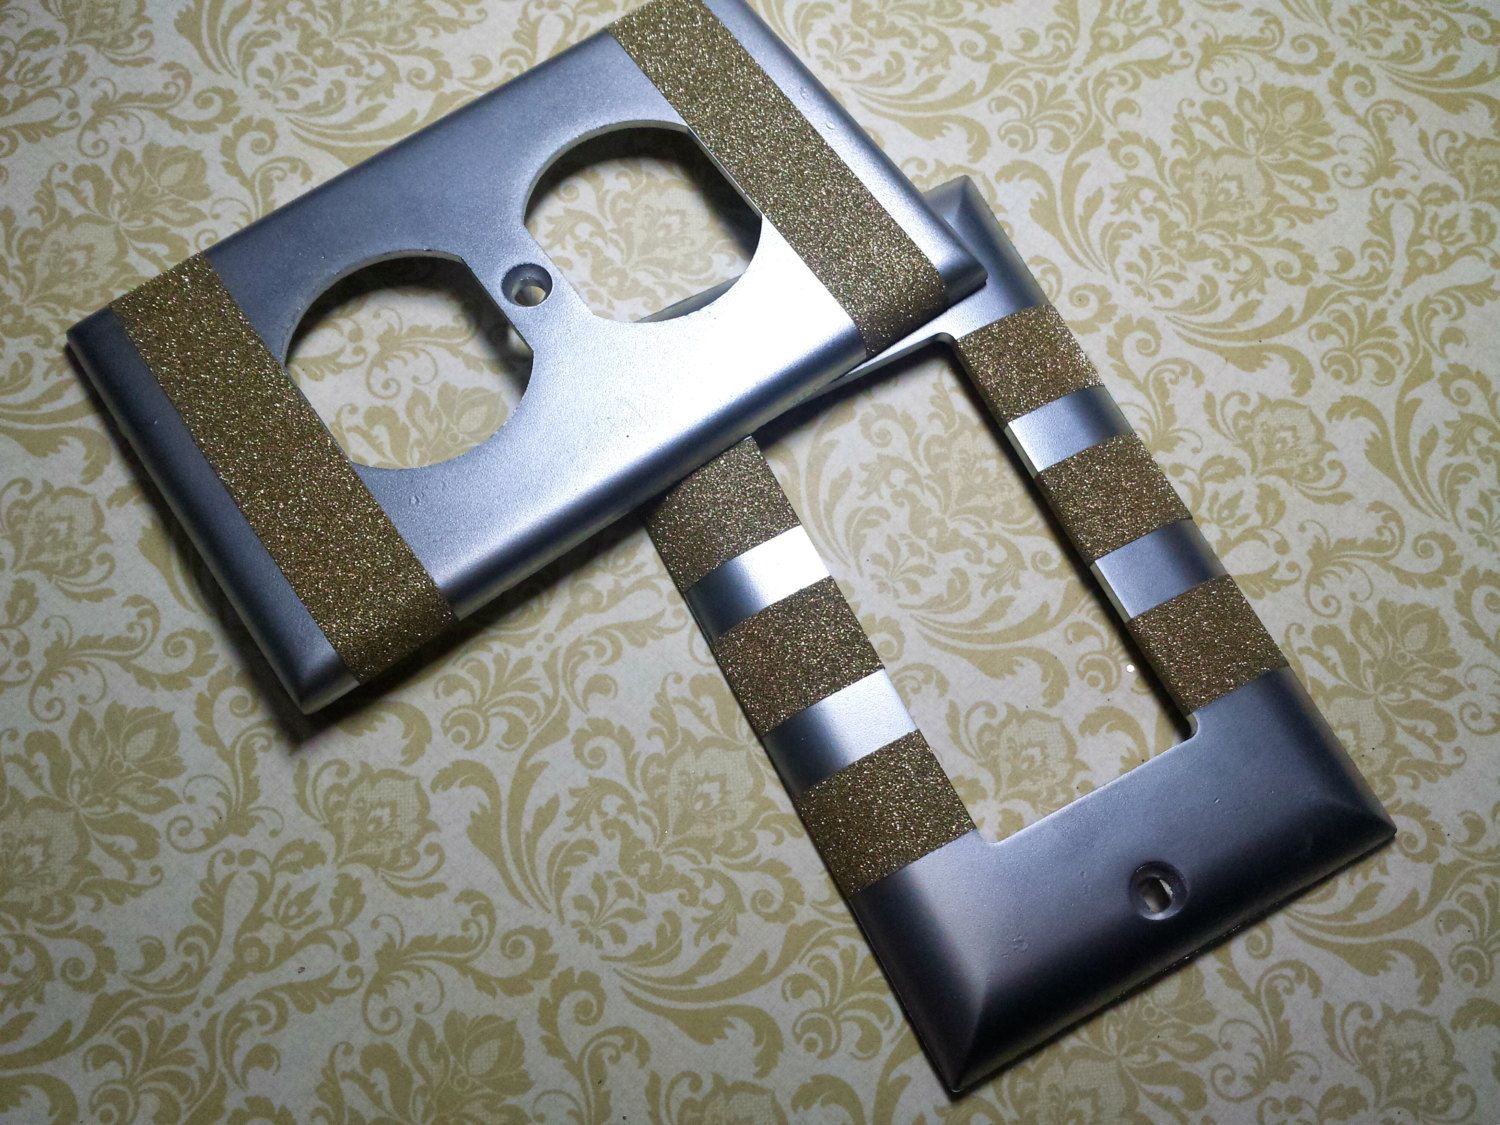 Decorative Light Switch Plates Decorative Bling Light Switch Plates Outlet Covers Silver